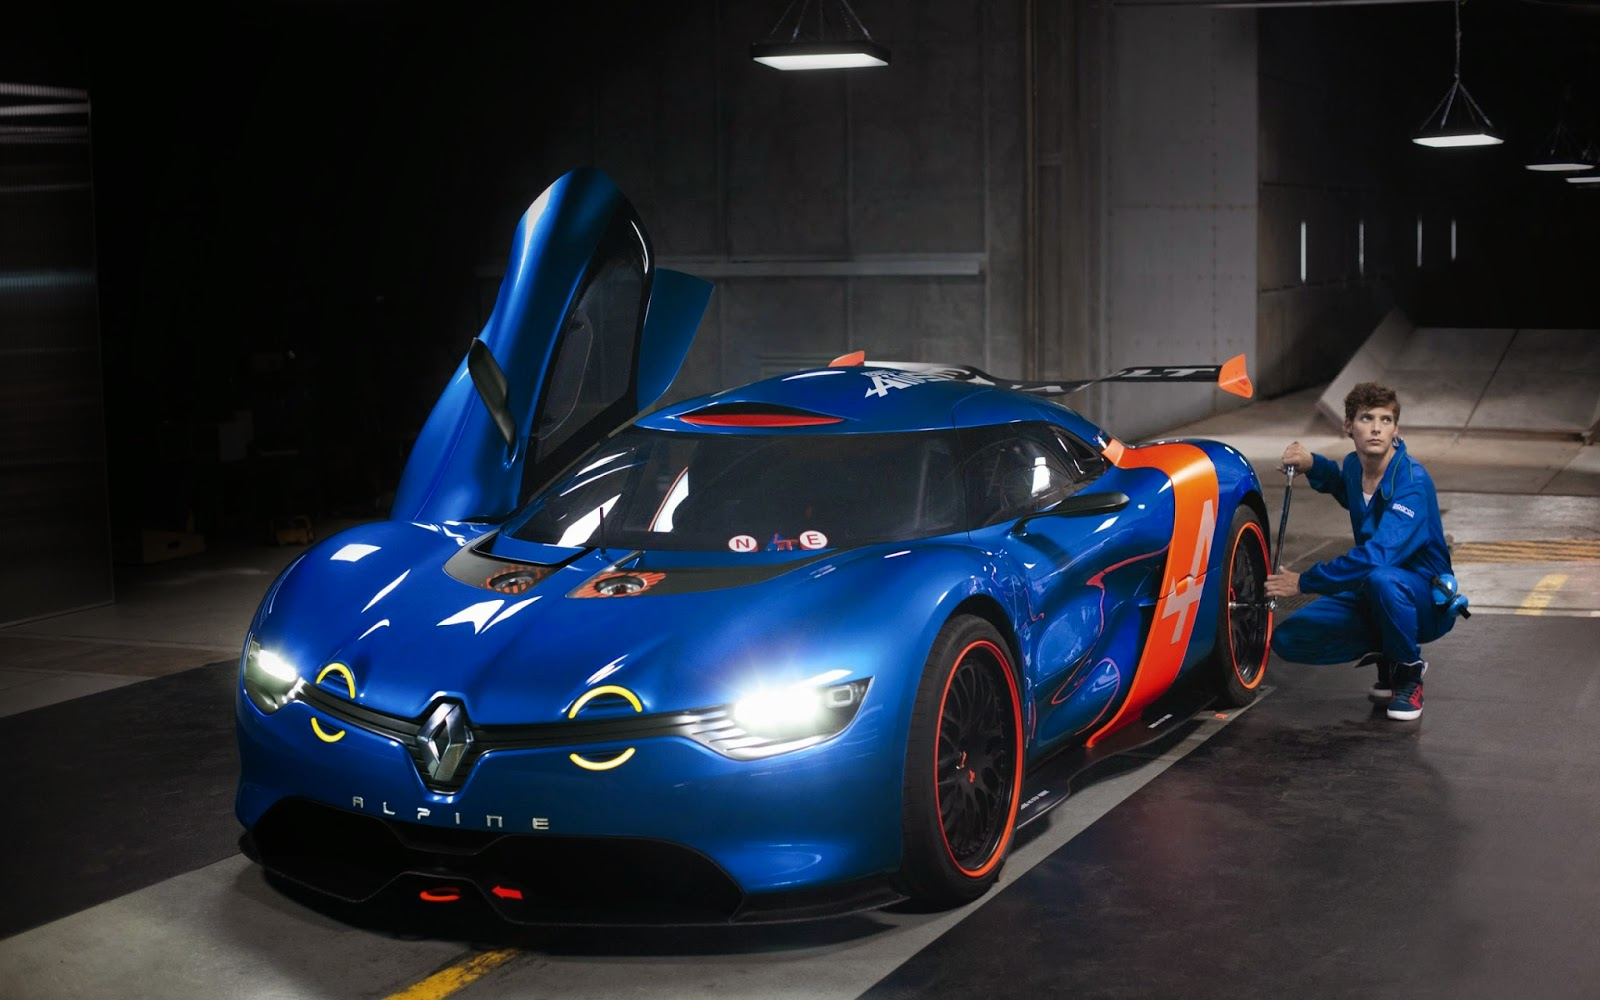 alpine as1 to begin renault 39 s new alpine sports car family vehicle information. Black Bedroom Furniture Sets. Home Design Ideas